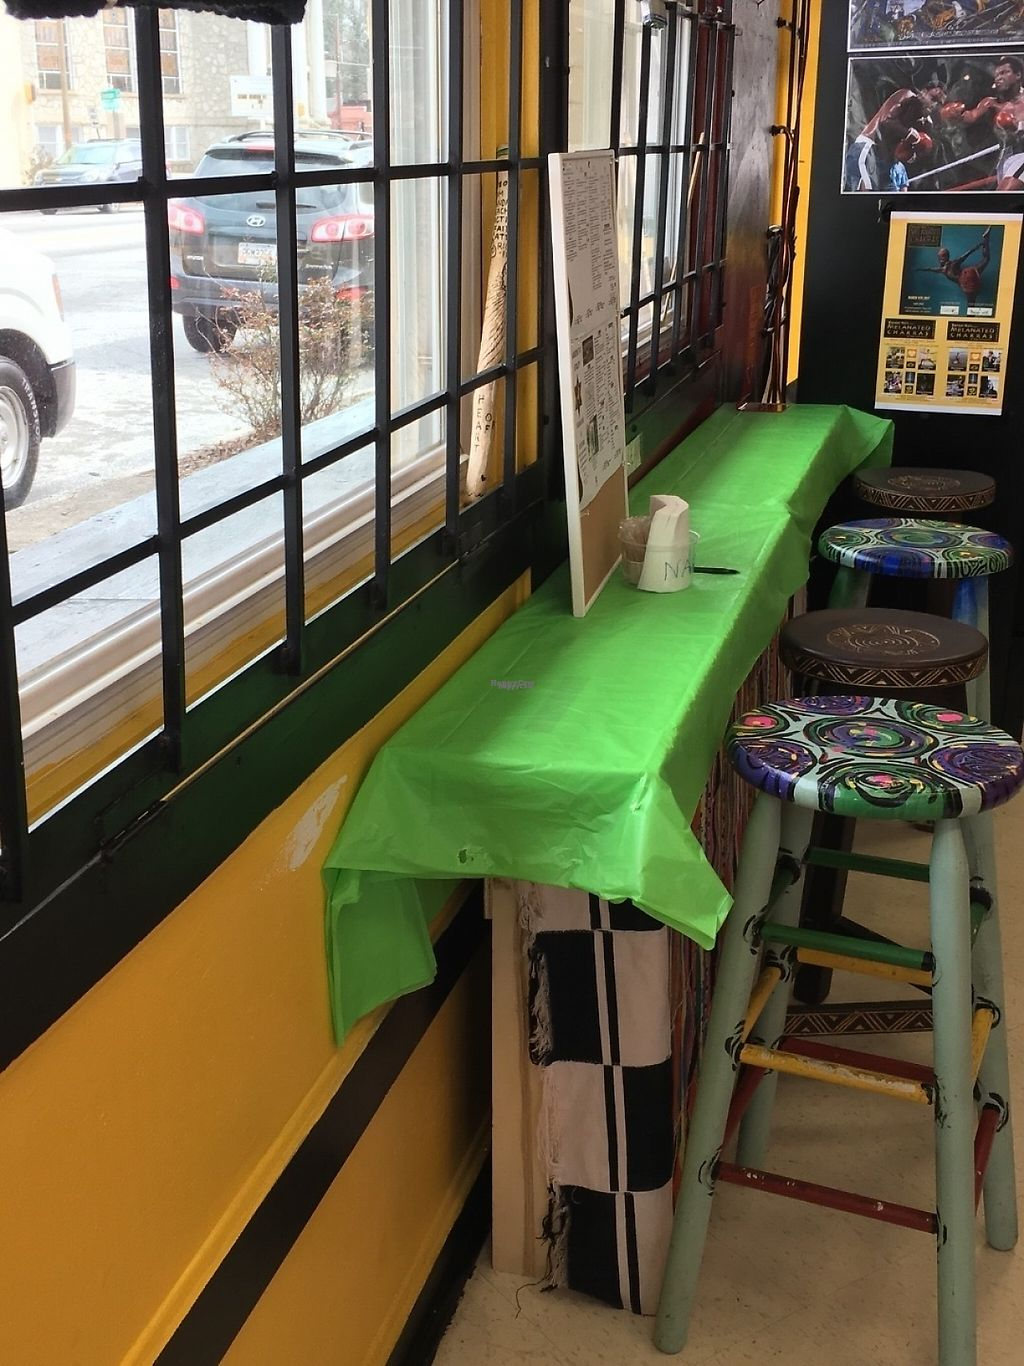 """Photo of KarbonStar Vitality Vegan Cafe & Juice Bar  by <a href=""""/members/profile/cookiem"""">cookiem</a> <br/>Seating <br/> February 21, 2017  - <a href='/contact/abuse/image/83655/228911'>Report</a>"""